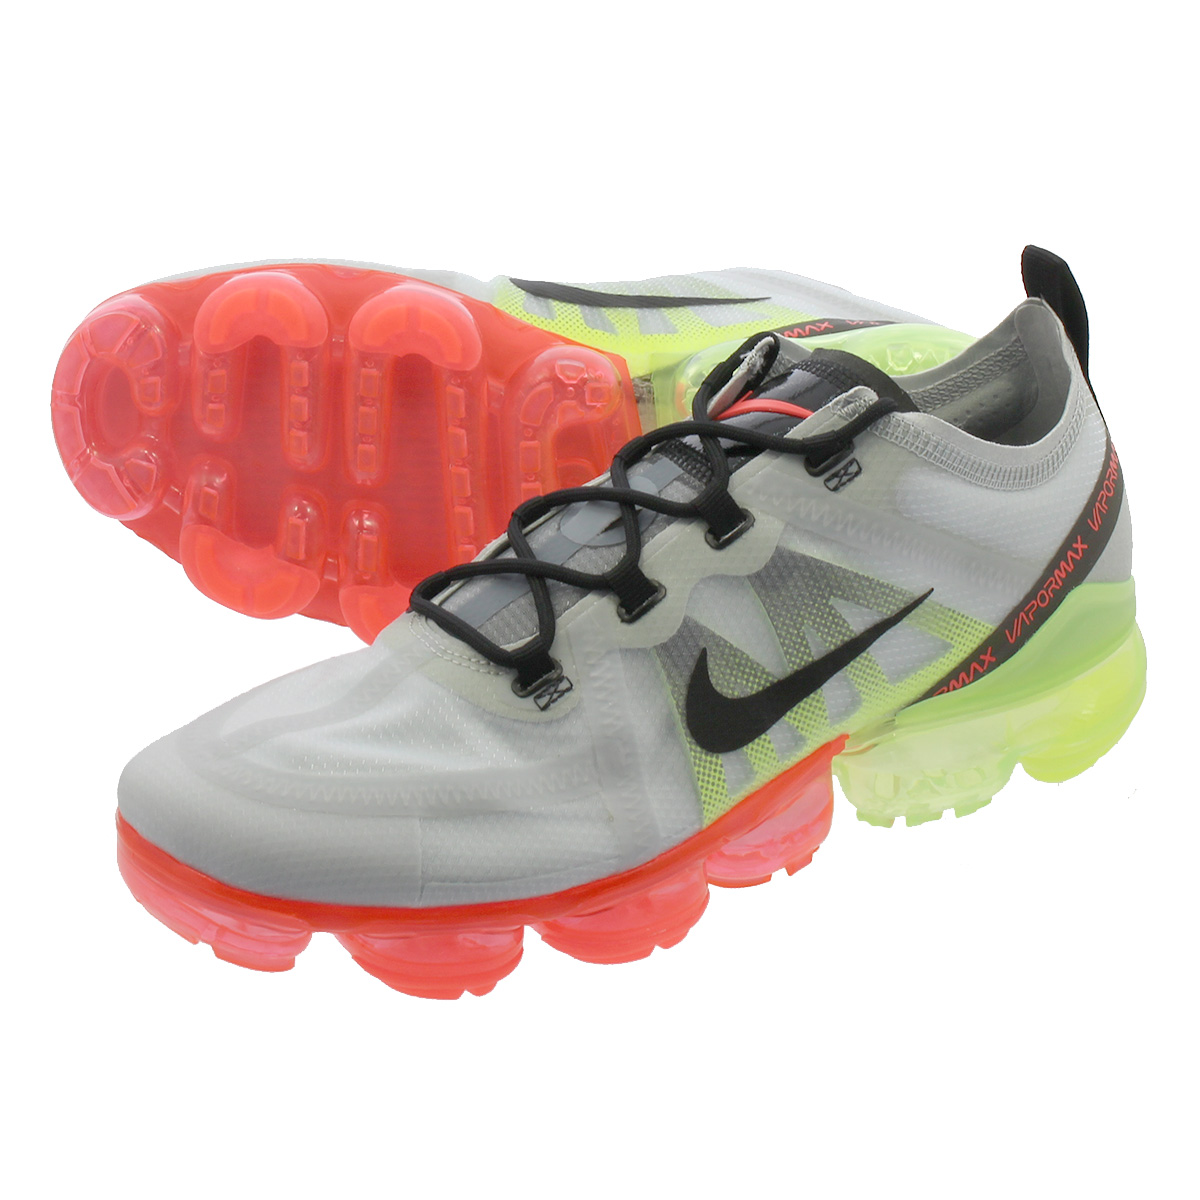 043376a7126dd NIKE AIR VAPORMAX 2019 Nike air vapor max 2019 PURE PLATINUM BLACK VOLT BRIGHT  CRIMSON ar6631-007